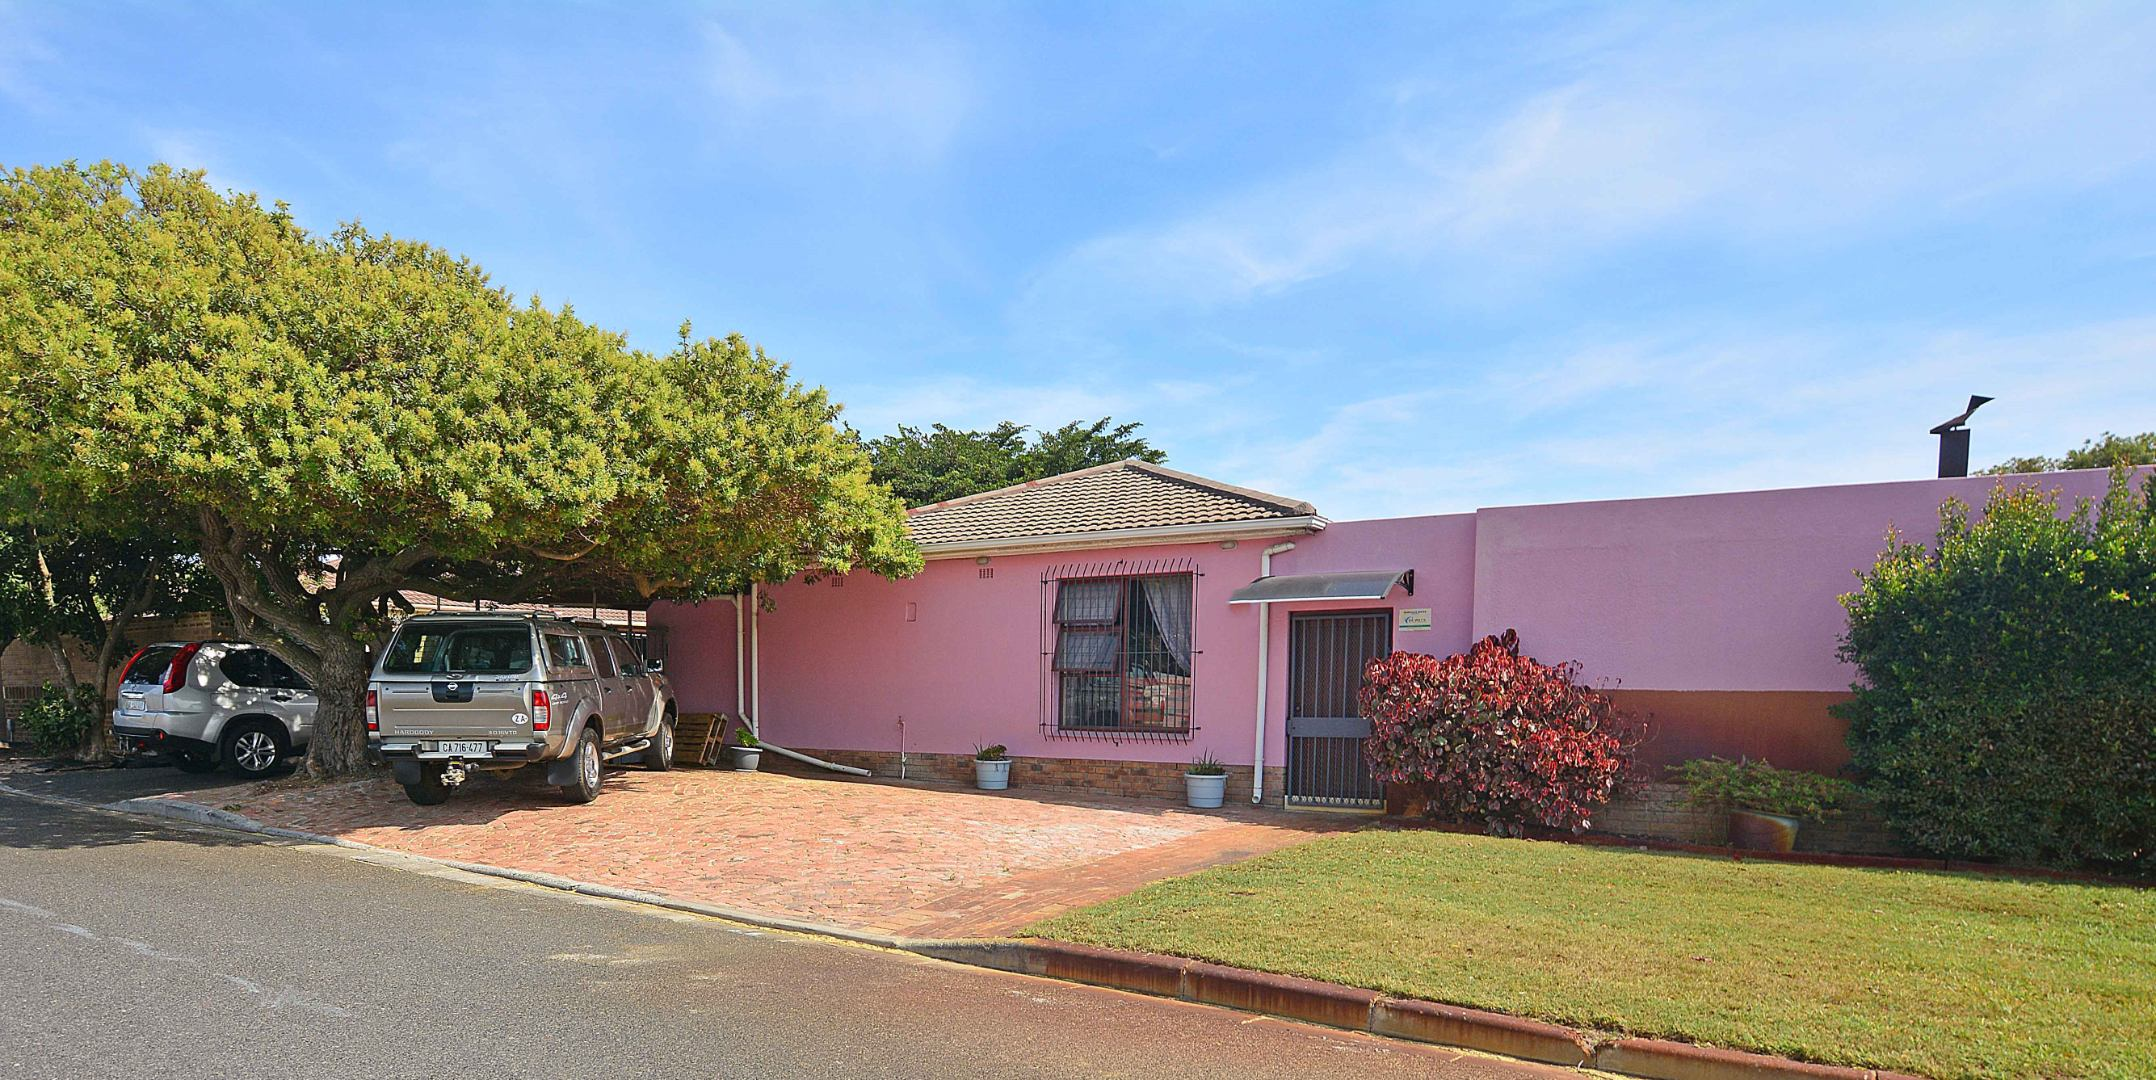 6 Bedroom House For Sale in Table View